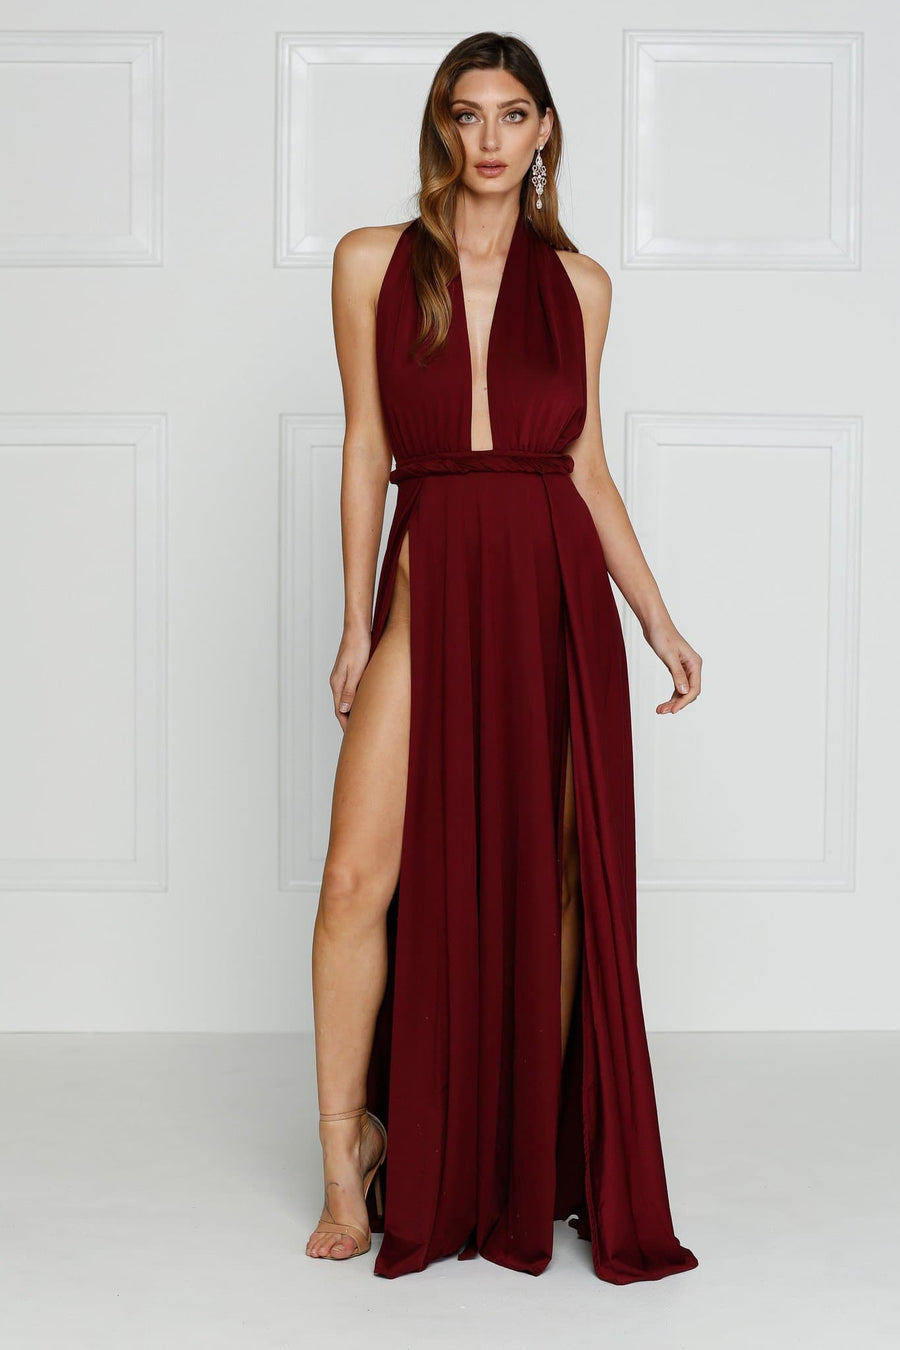 Catalina burgundy multi way maxi dress for bridesmaid, formal or prom available online